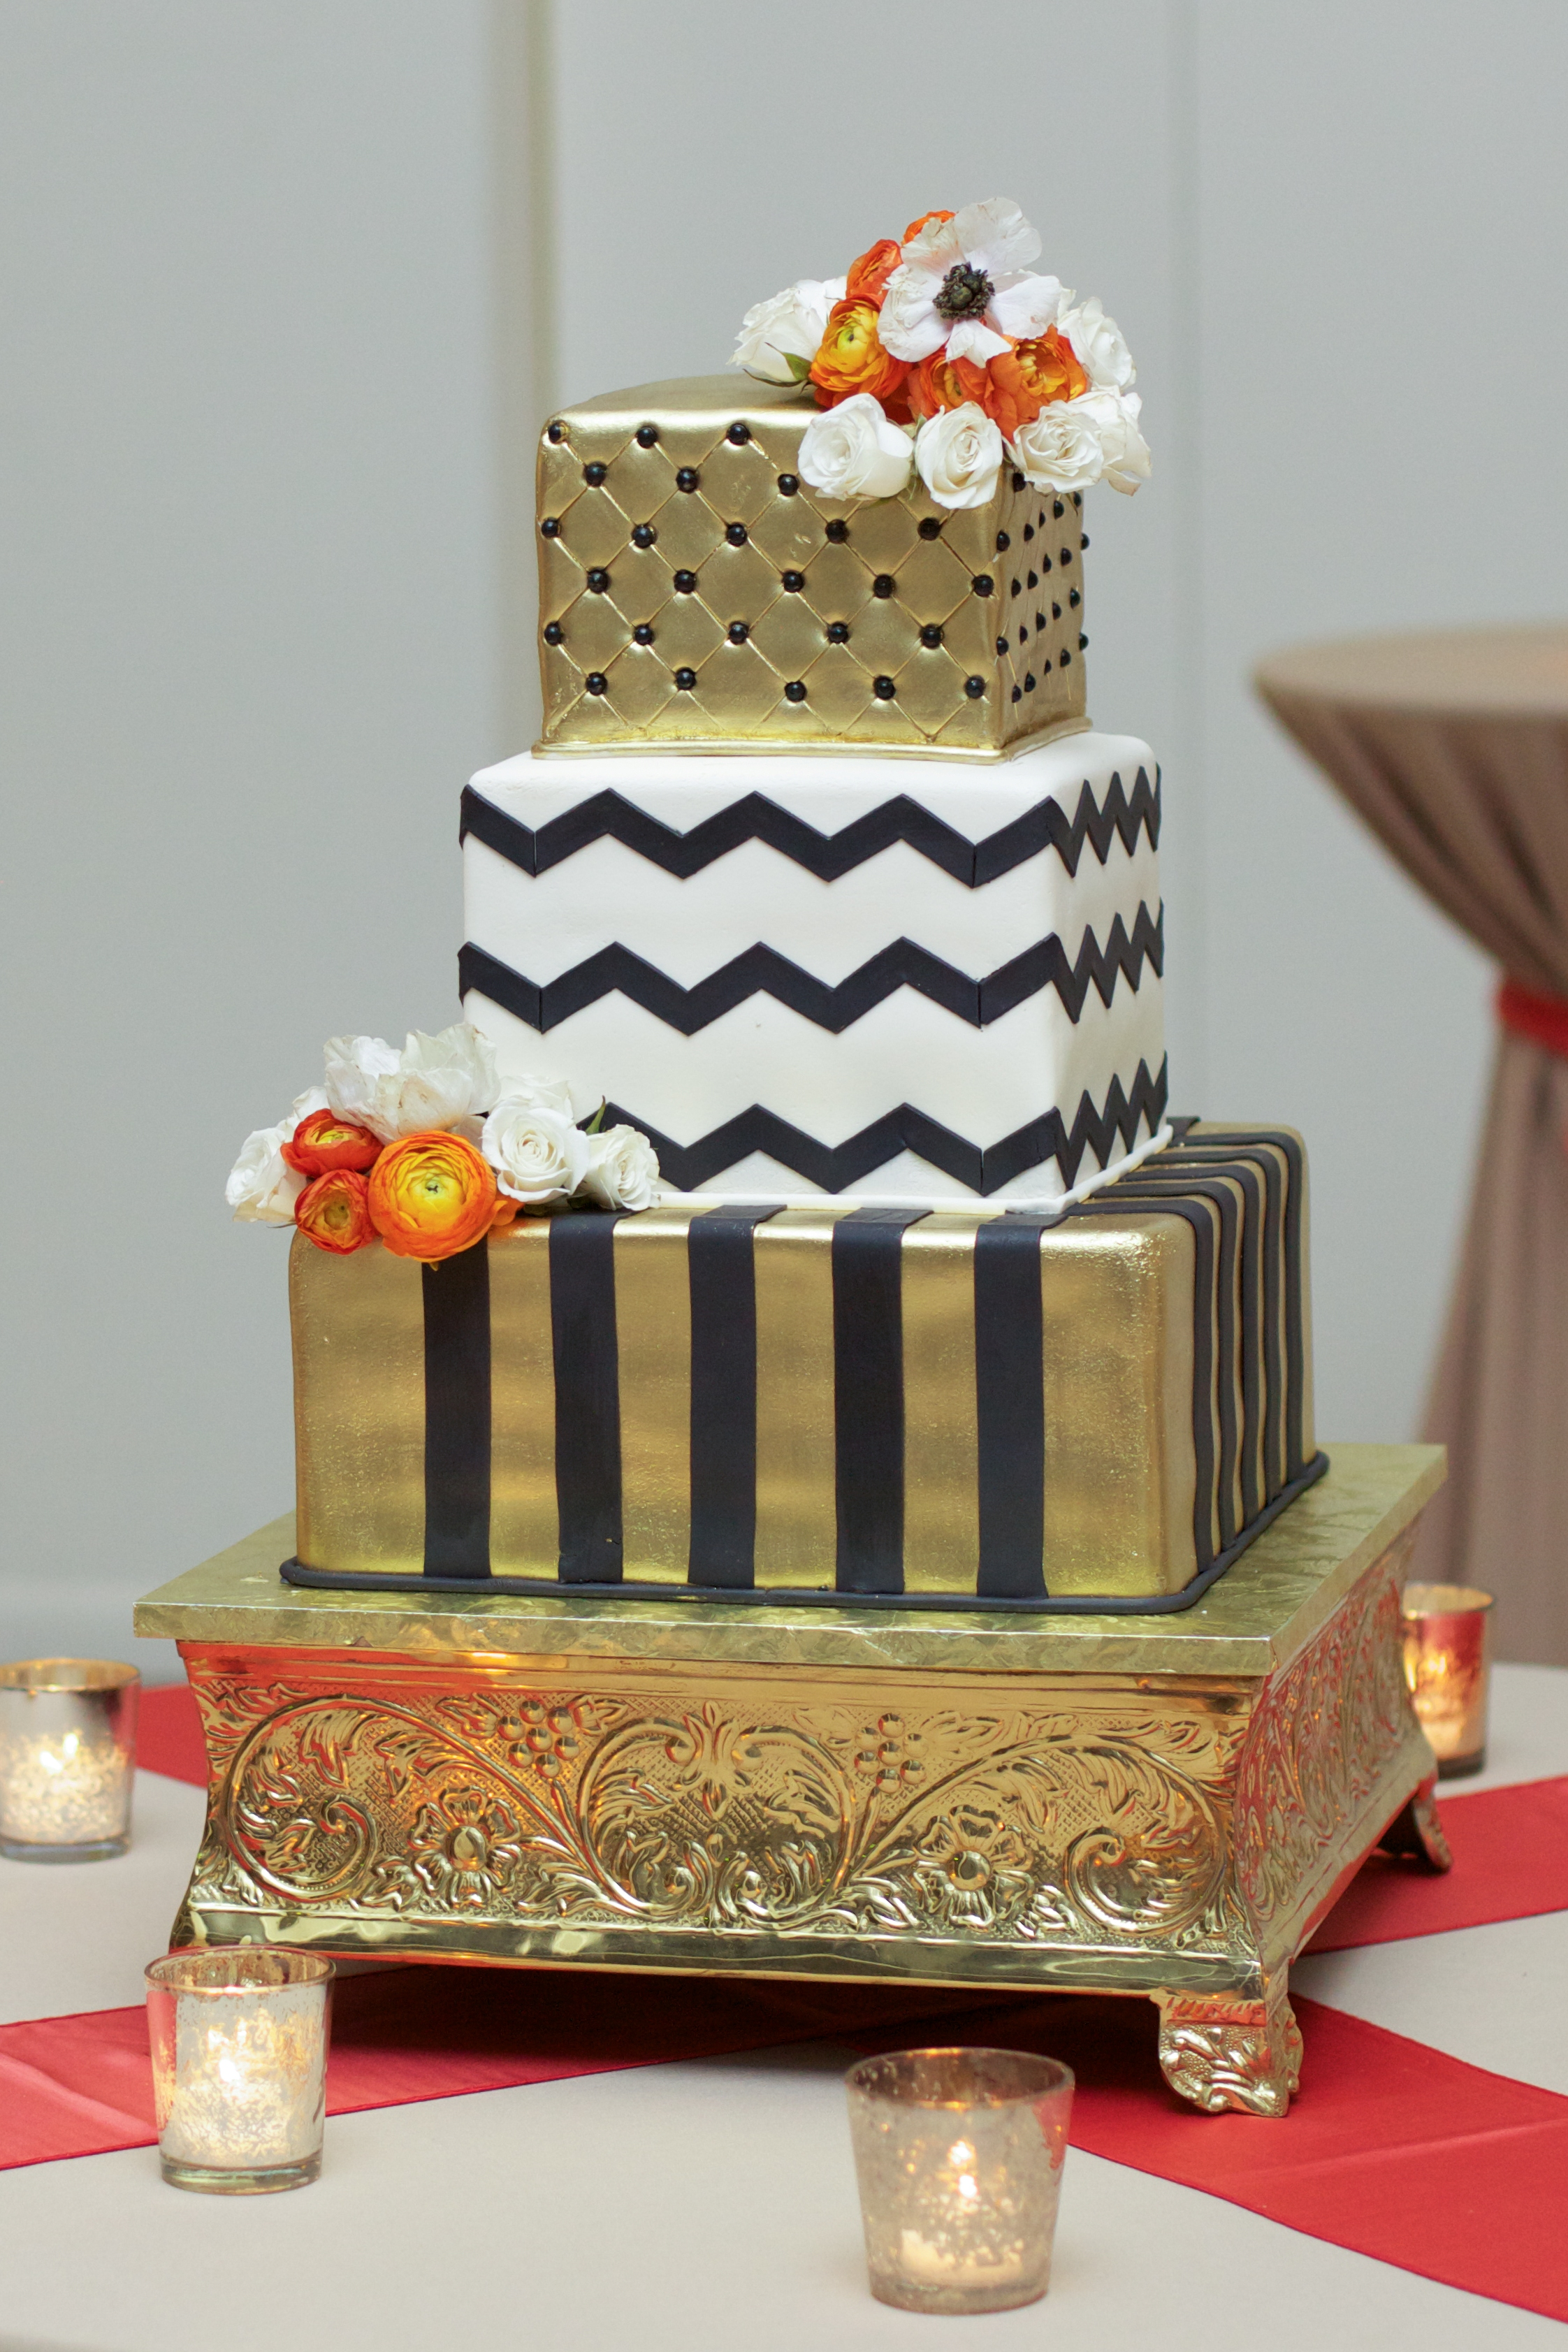 The wedding cake design incorporated black, white, and gold leaf with clusters of fresh flowers